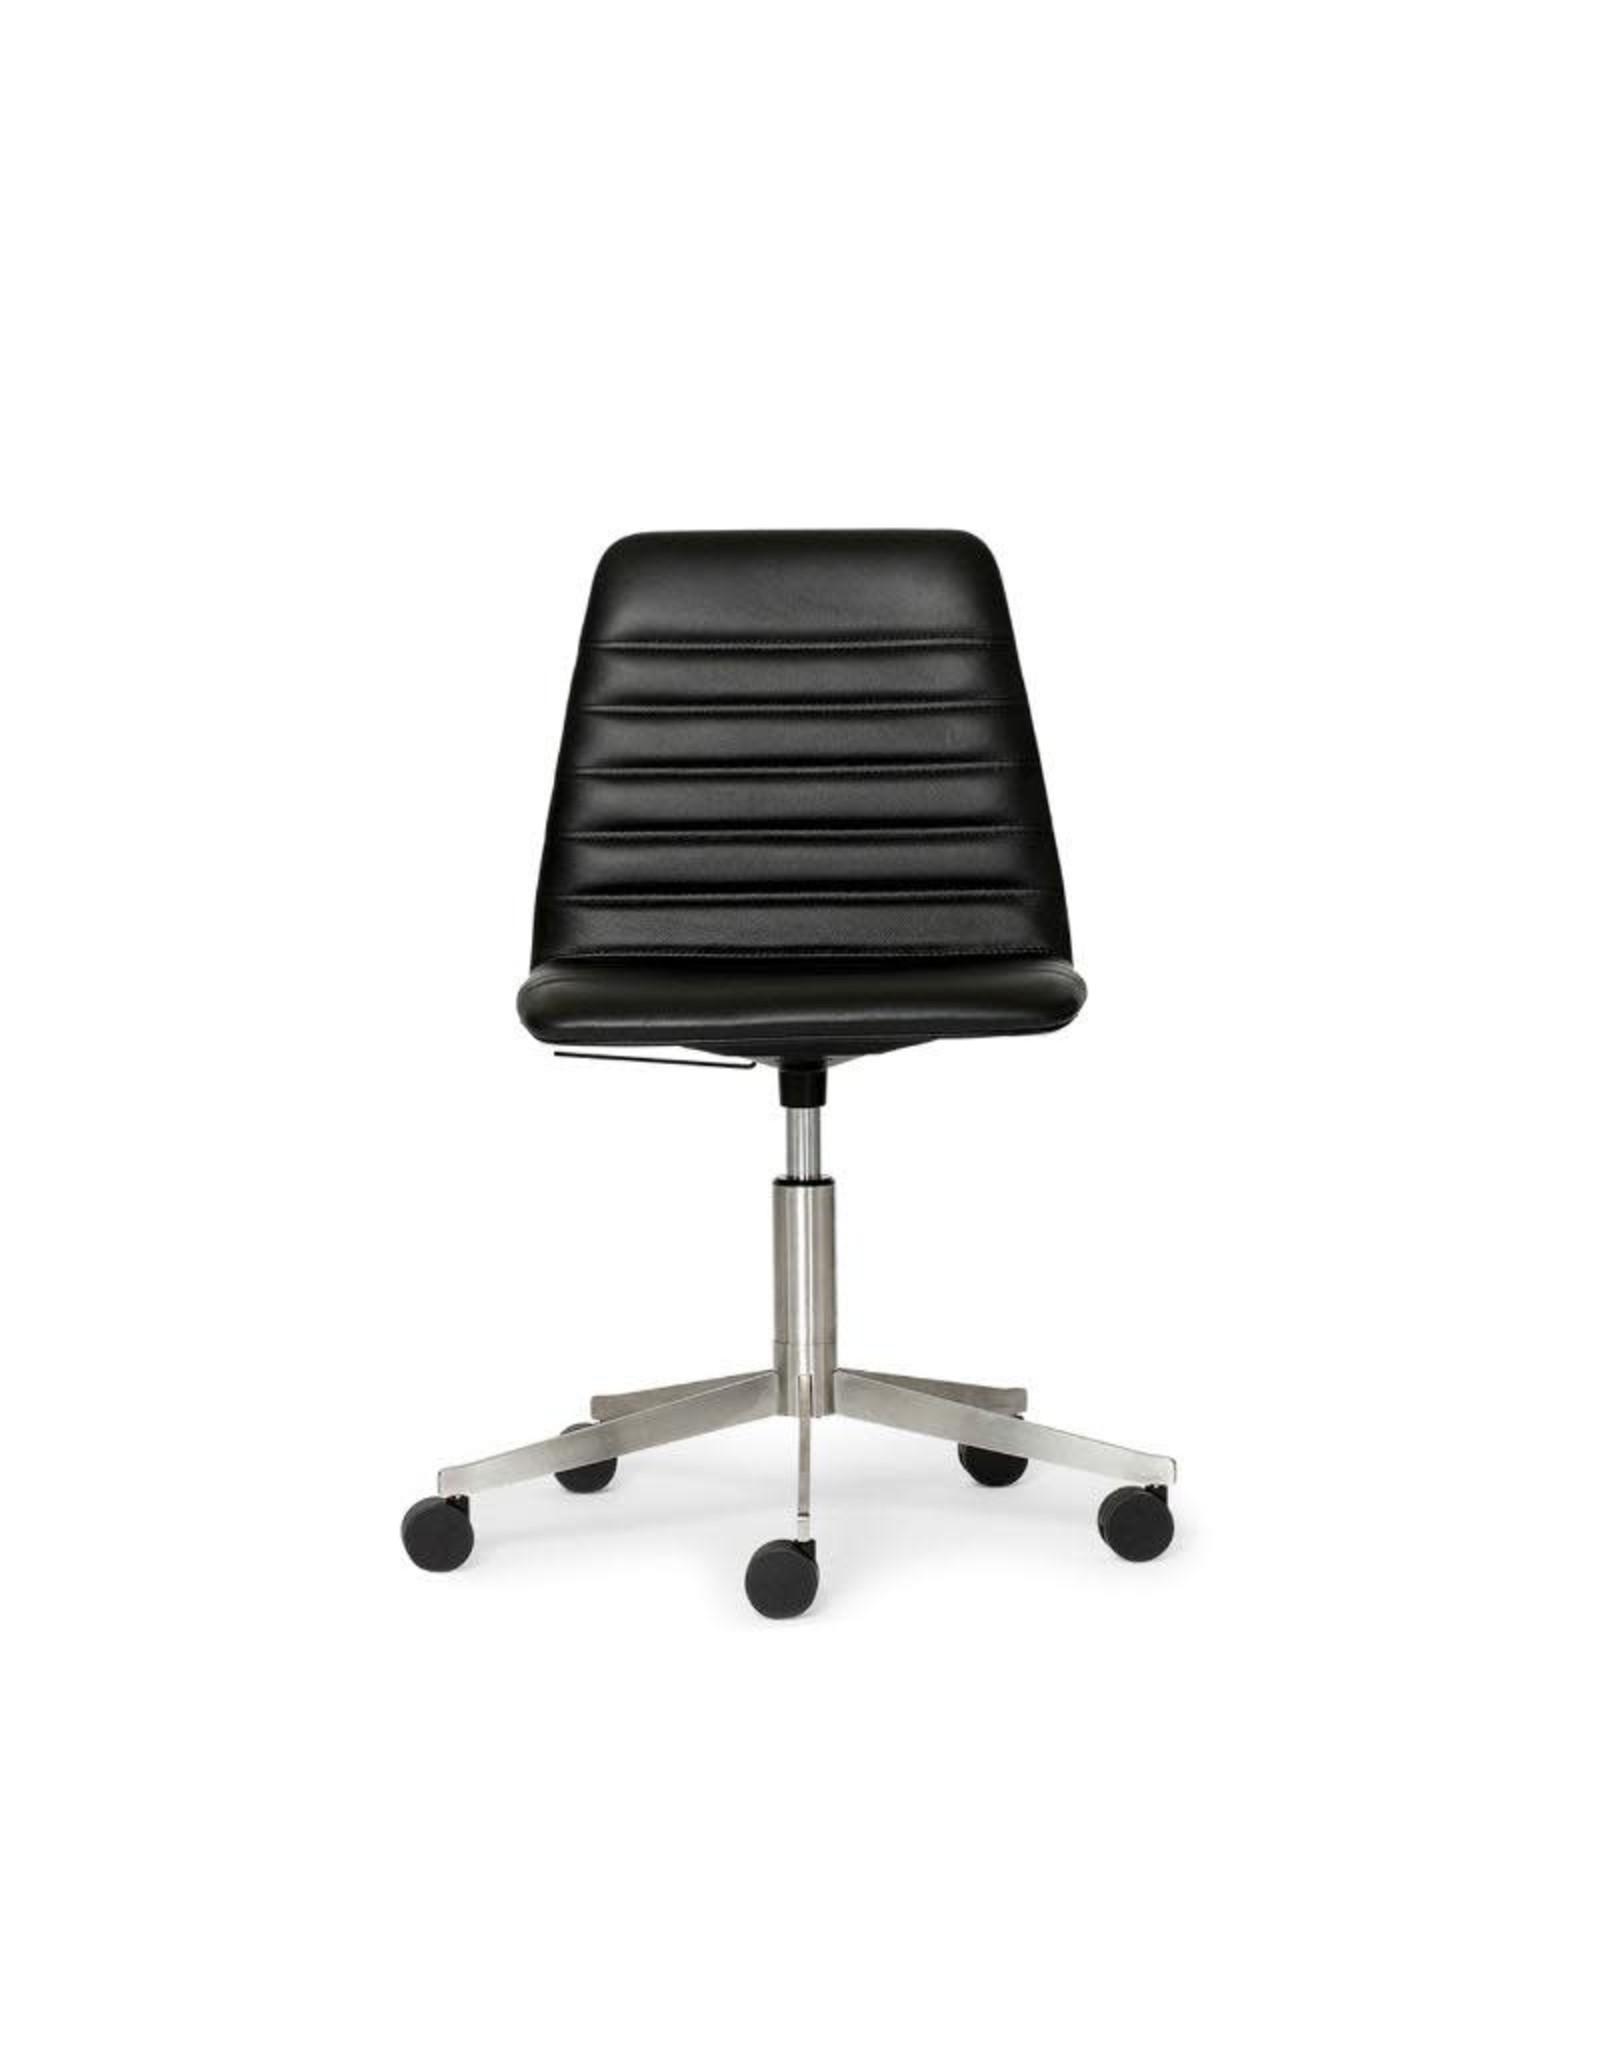 PAUSTIAN SPINAL CHAIR 44 WITH SWIVEL BASE ON CASTORS